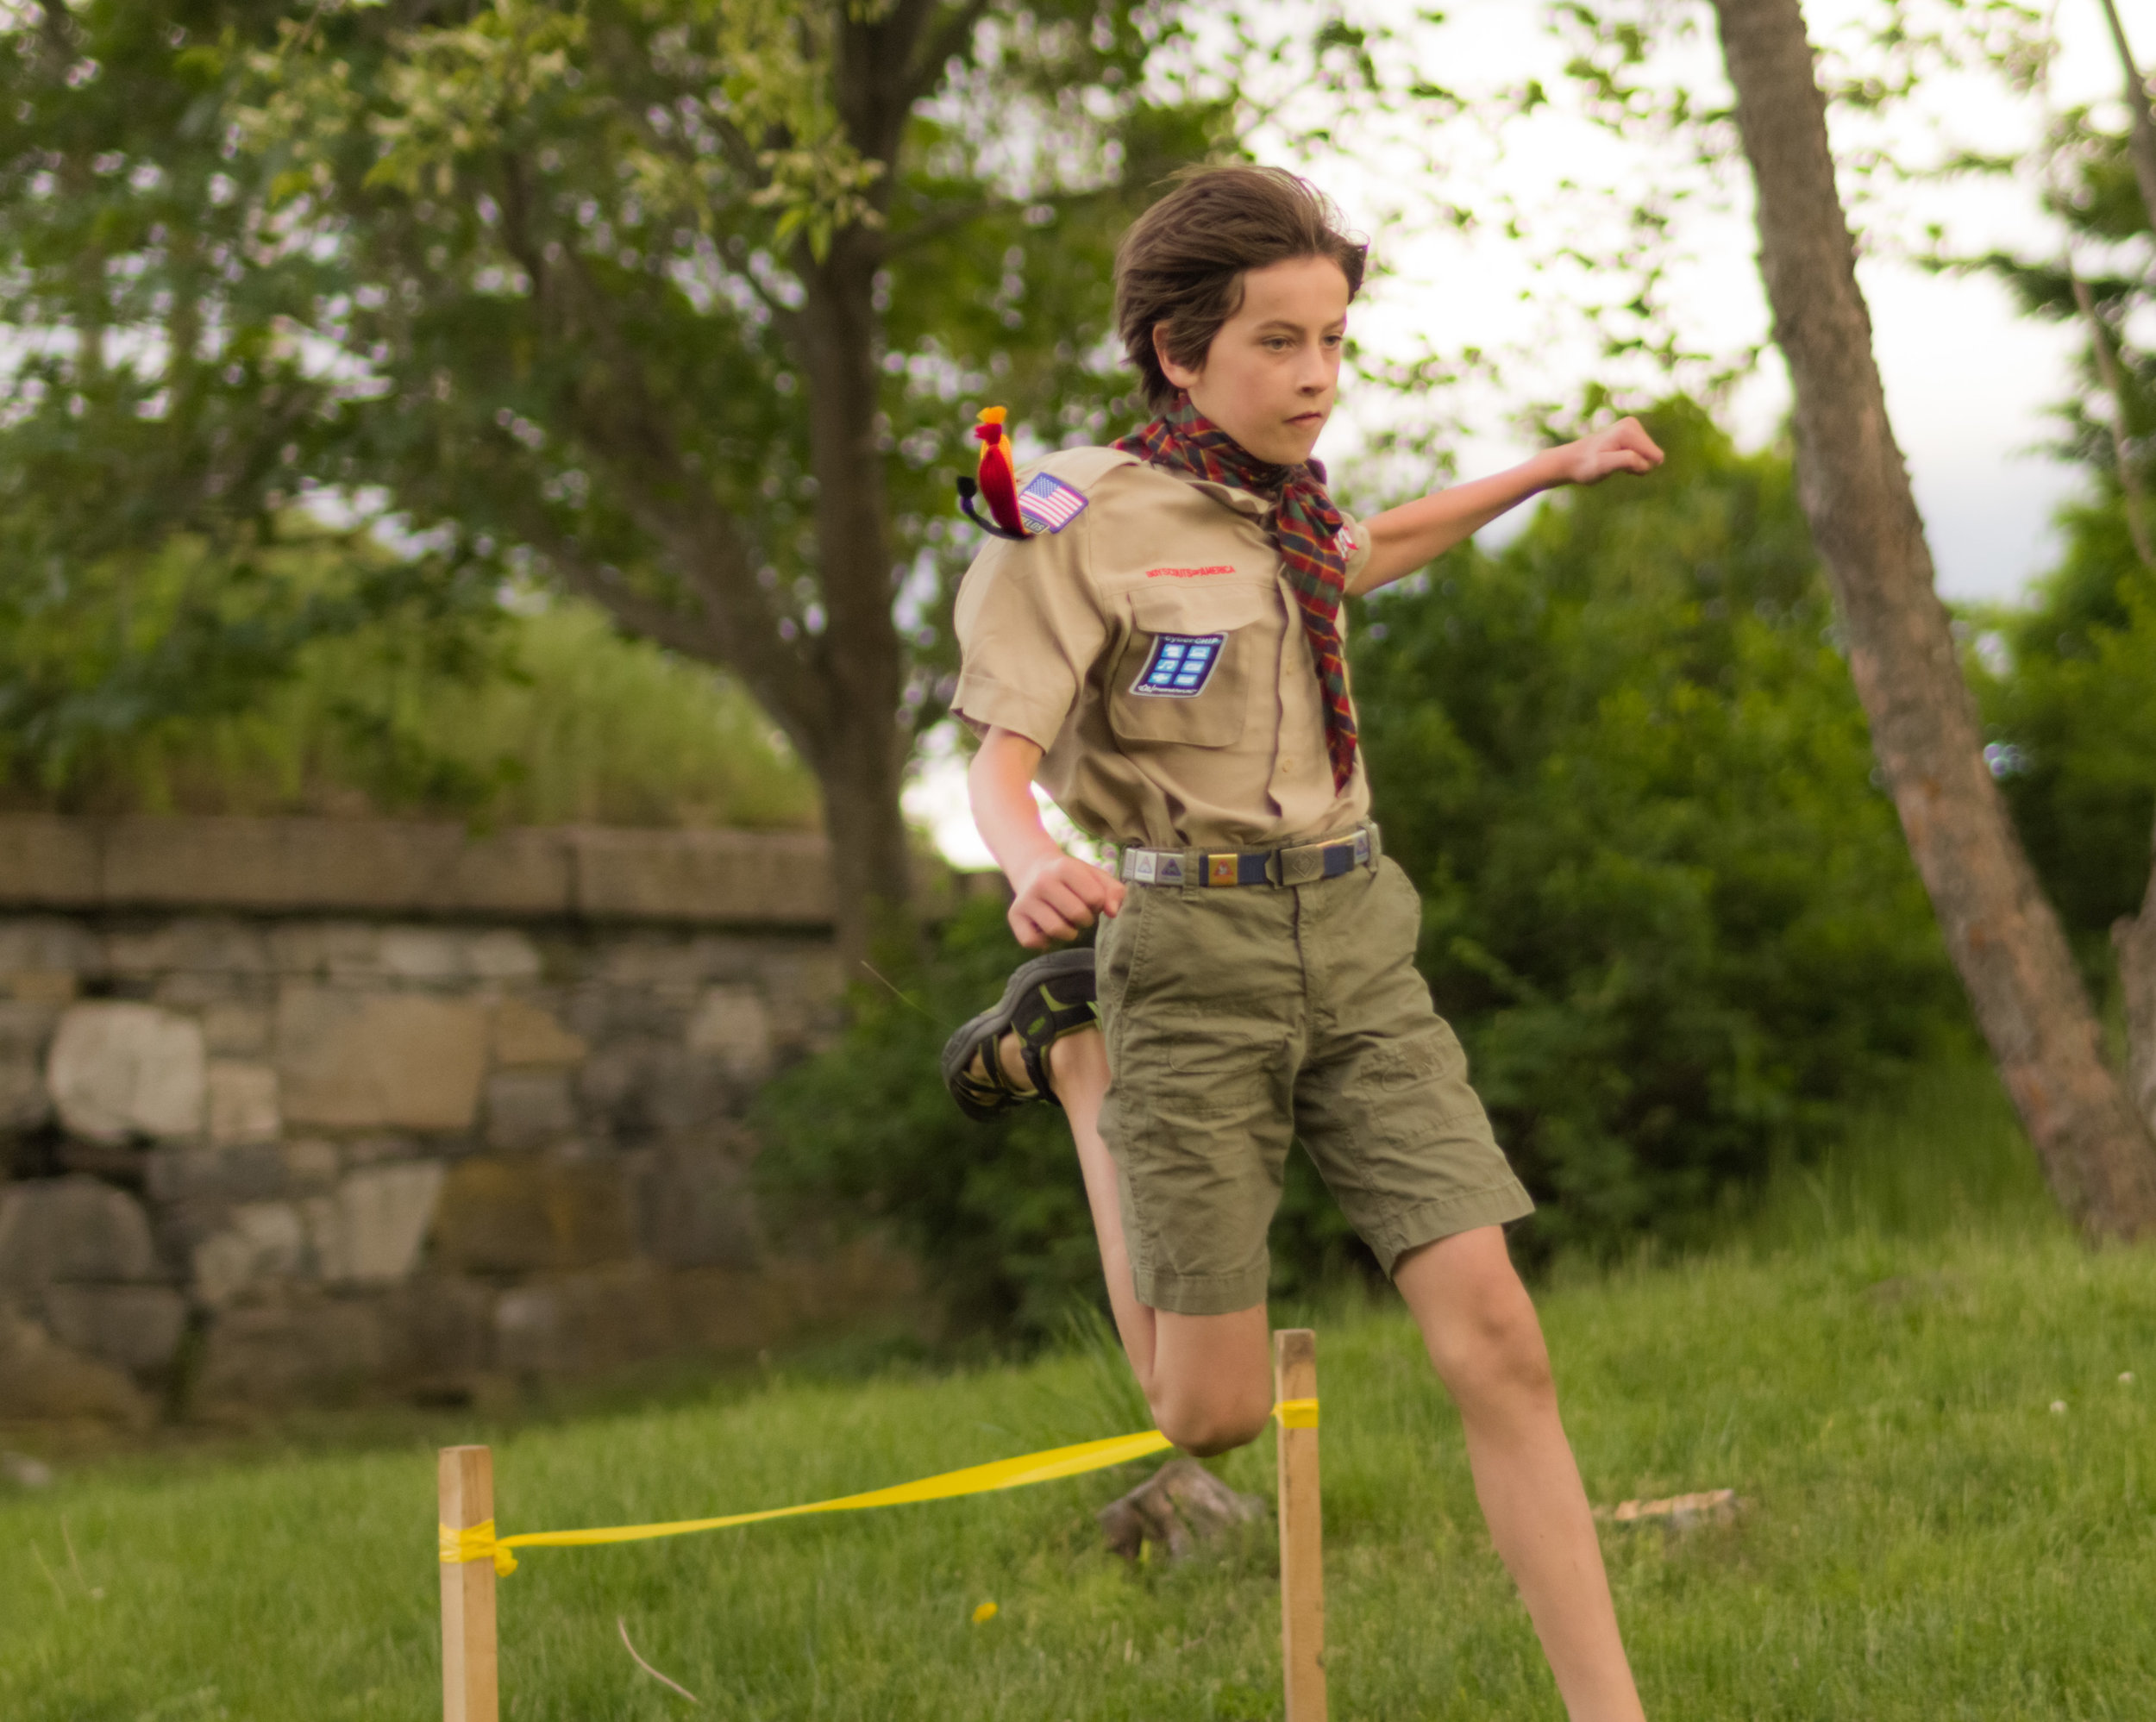 Cub Scouts Obstacle Course_21.jpg